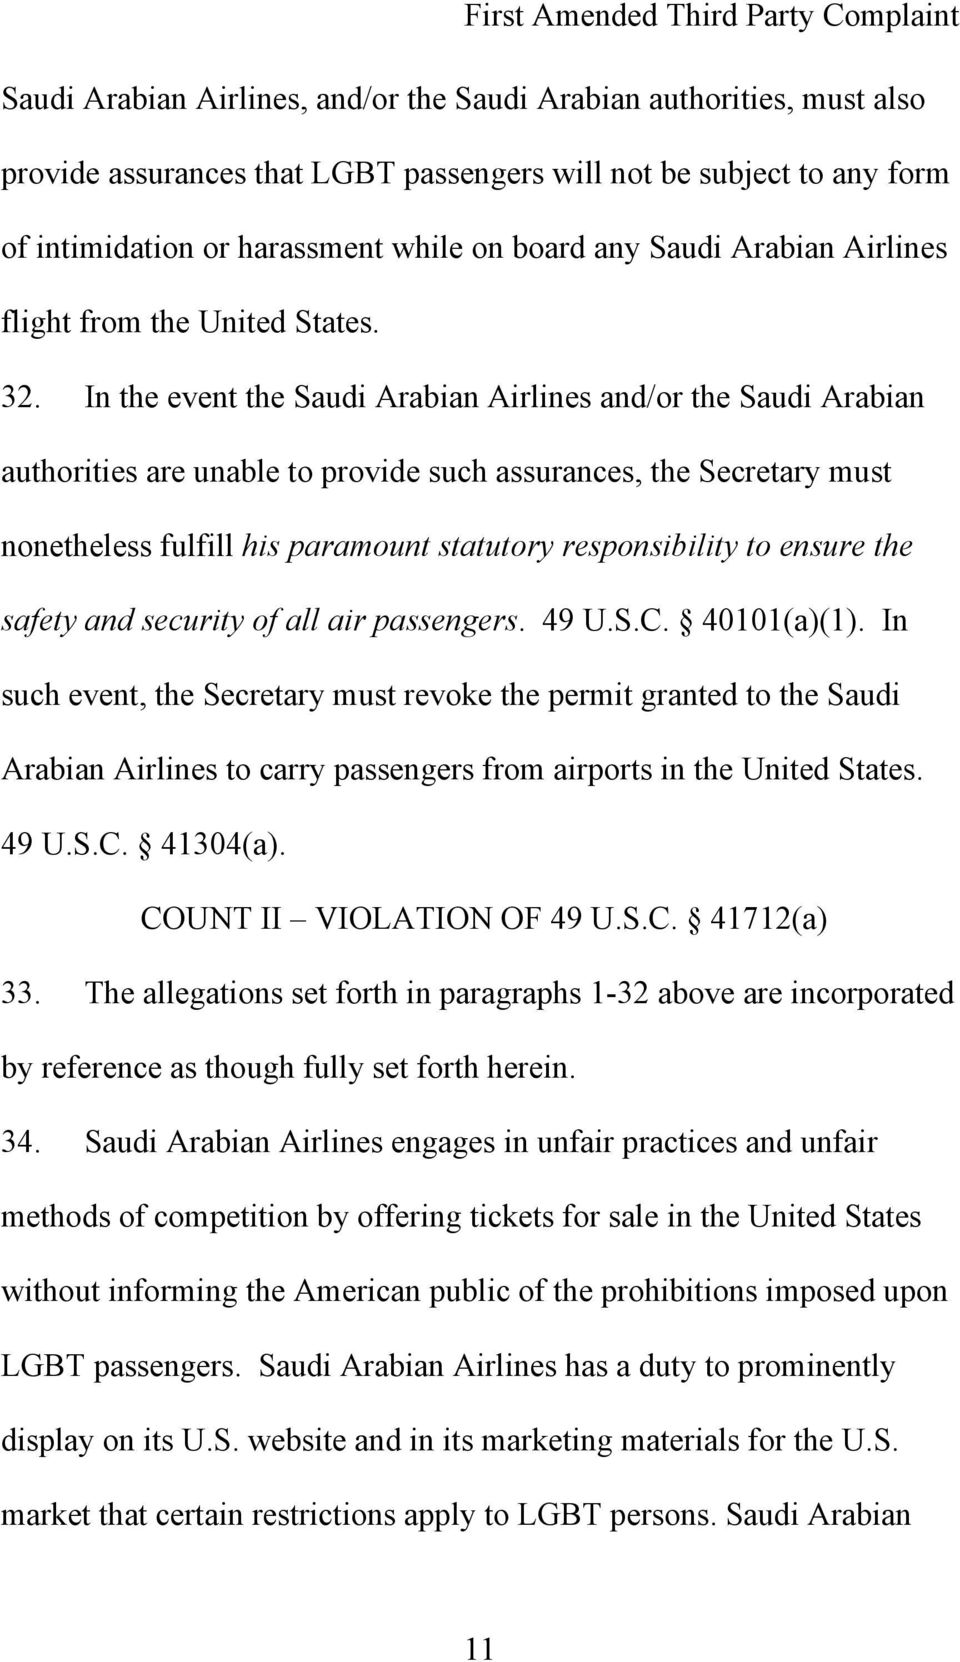 In the event the Saudi Arabian Airlines and/or the Saudi Arabian authorities are unable to provide such assurances, the Secretary must nonetheless fulfill his paramount statutory responsibility to